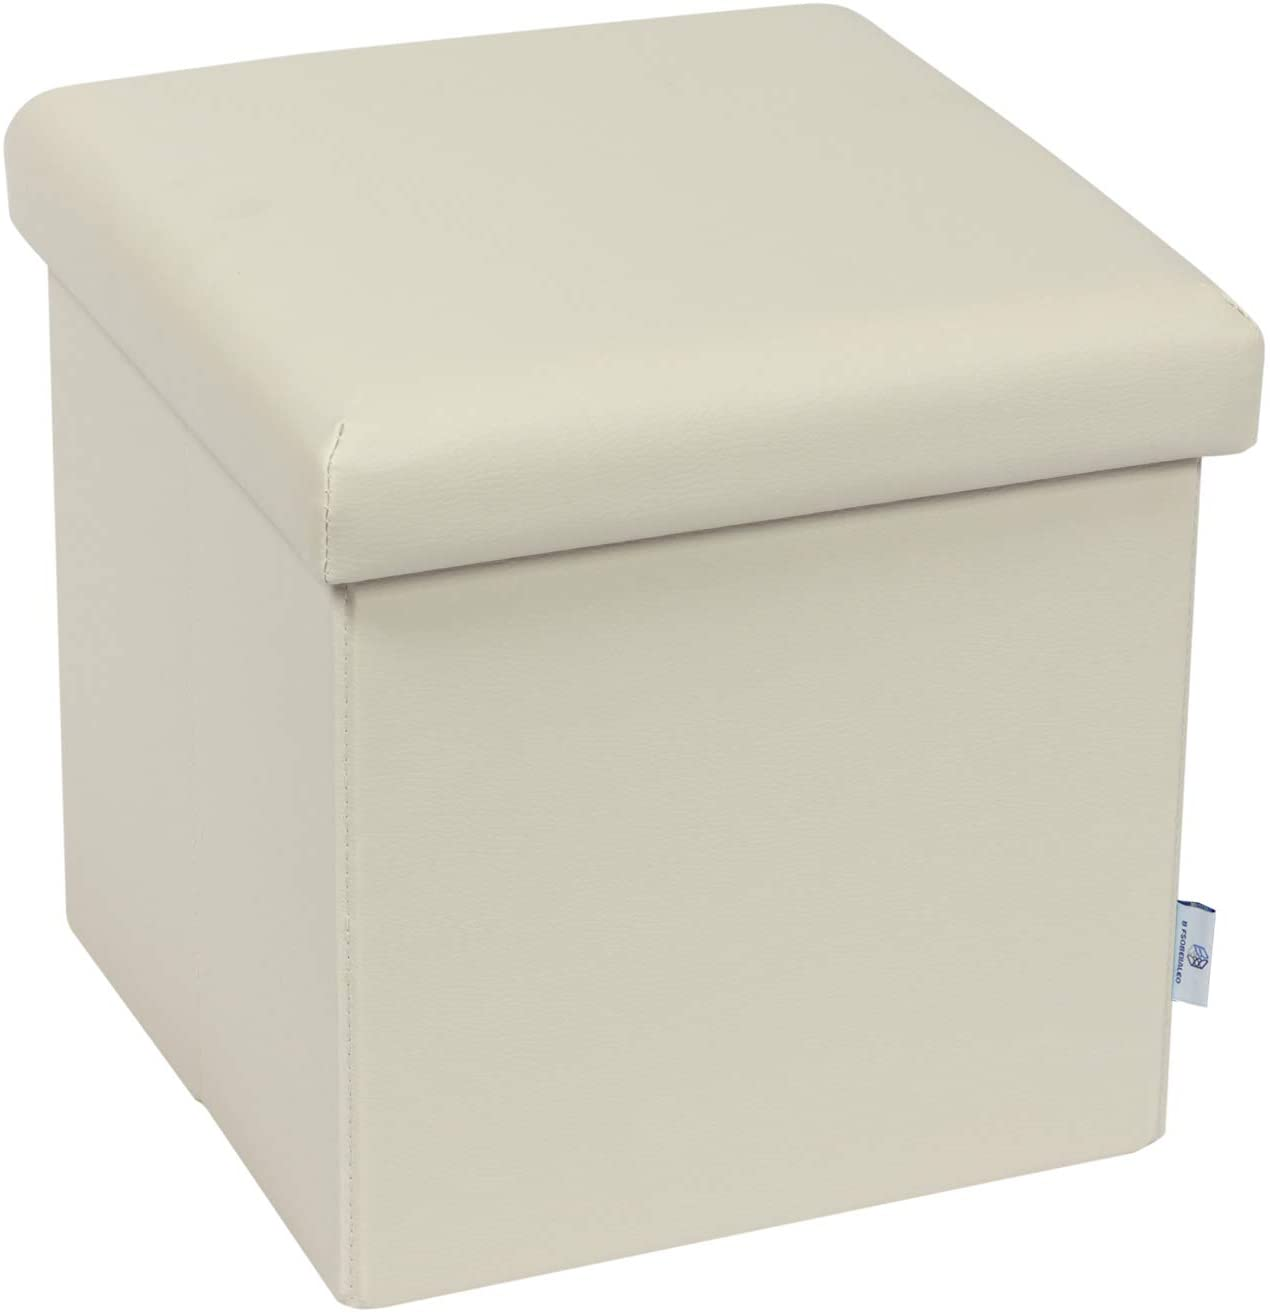 "B FSOBEIIALEO Folding Storage Ottoman Cube with Faux Leather Toy Chest Footrest for Baby Beige 11.8""x11.8""x11.8"""